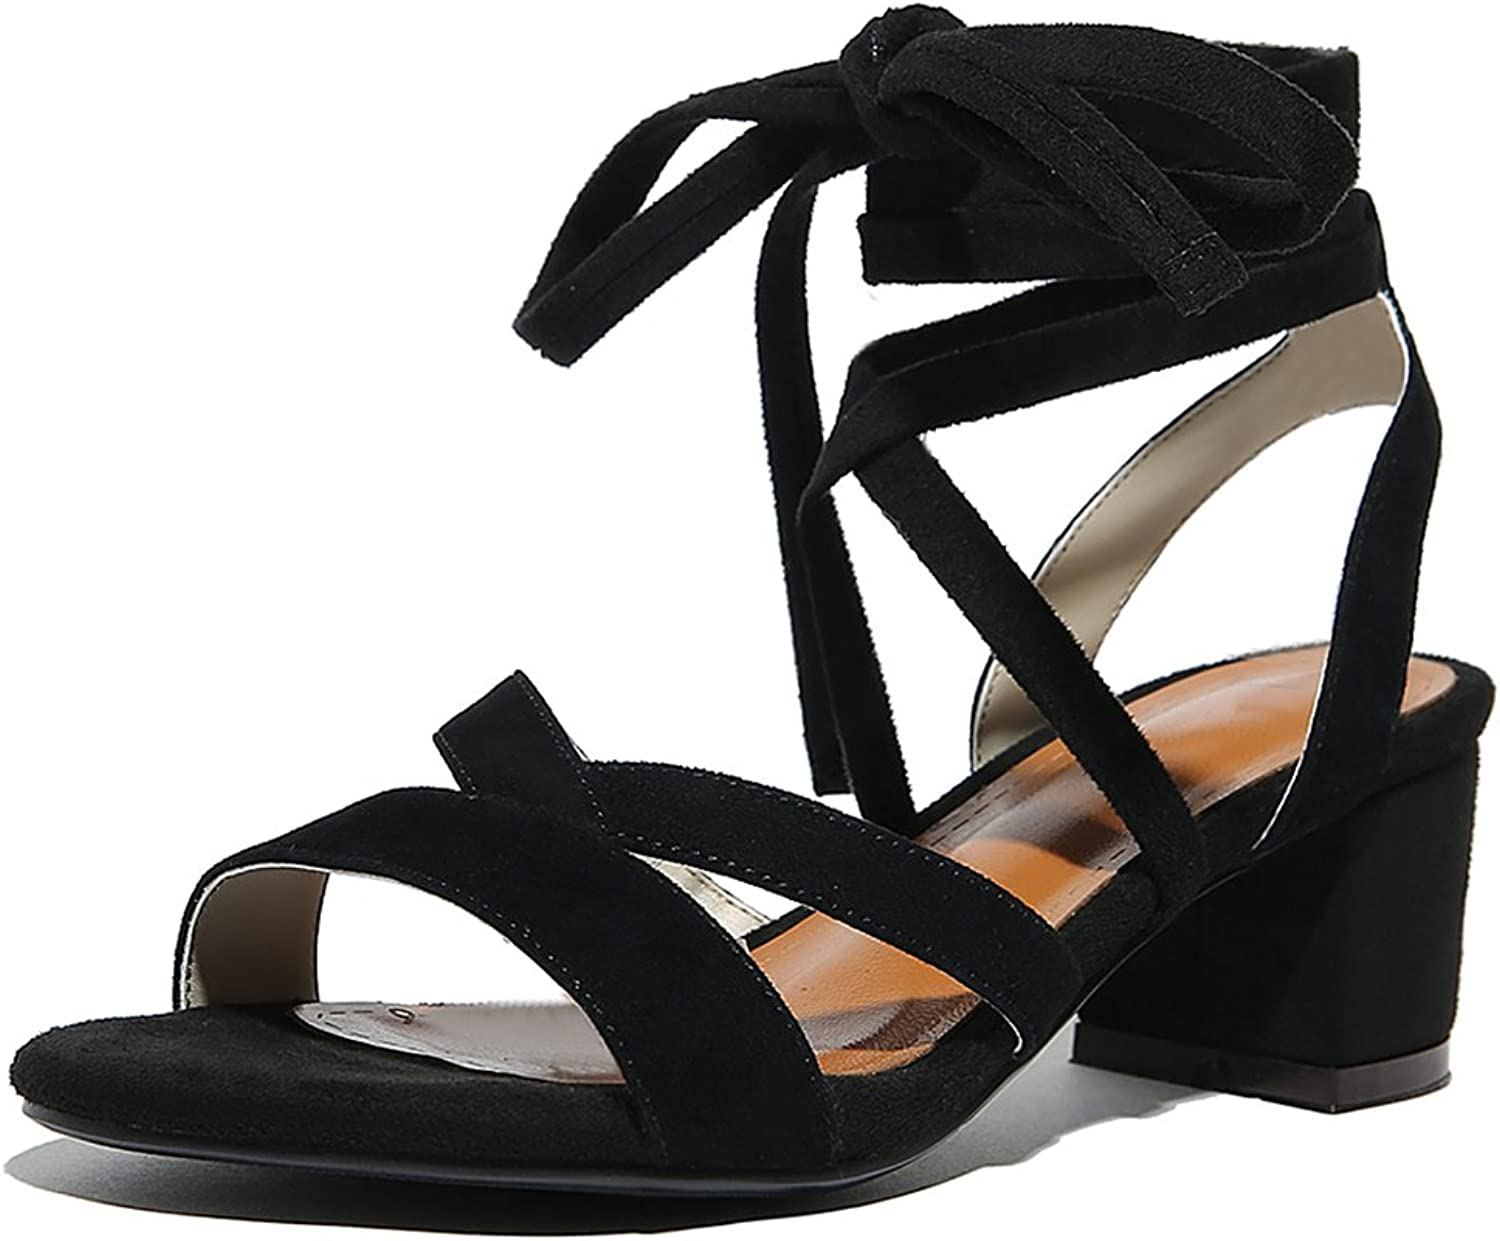 CLIDOU Womens Heeled Sandals Brown and Black